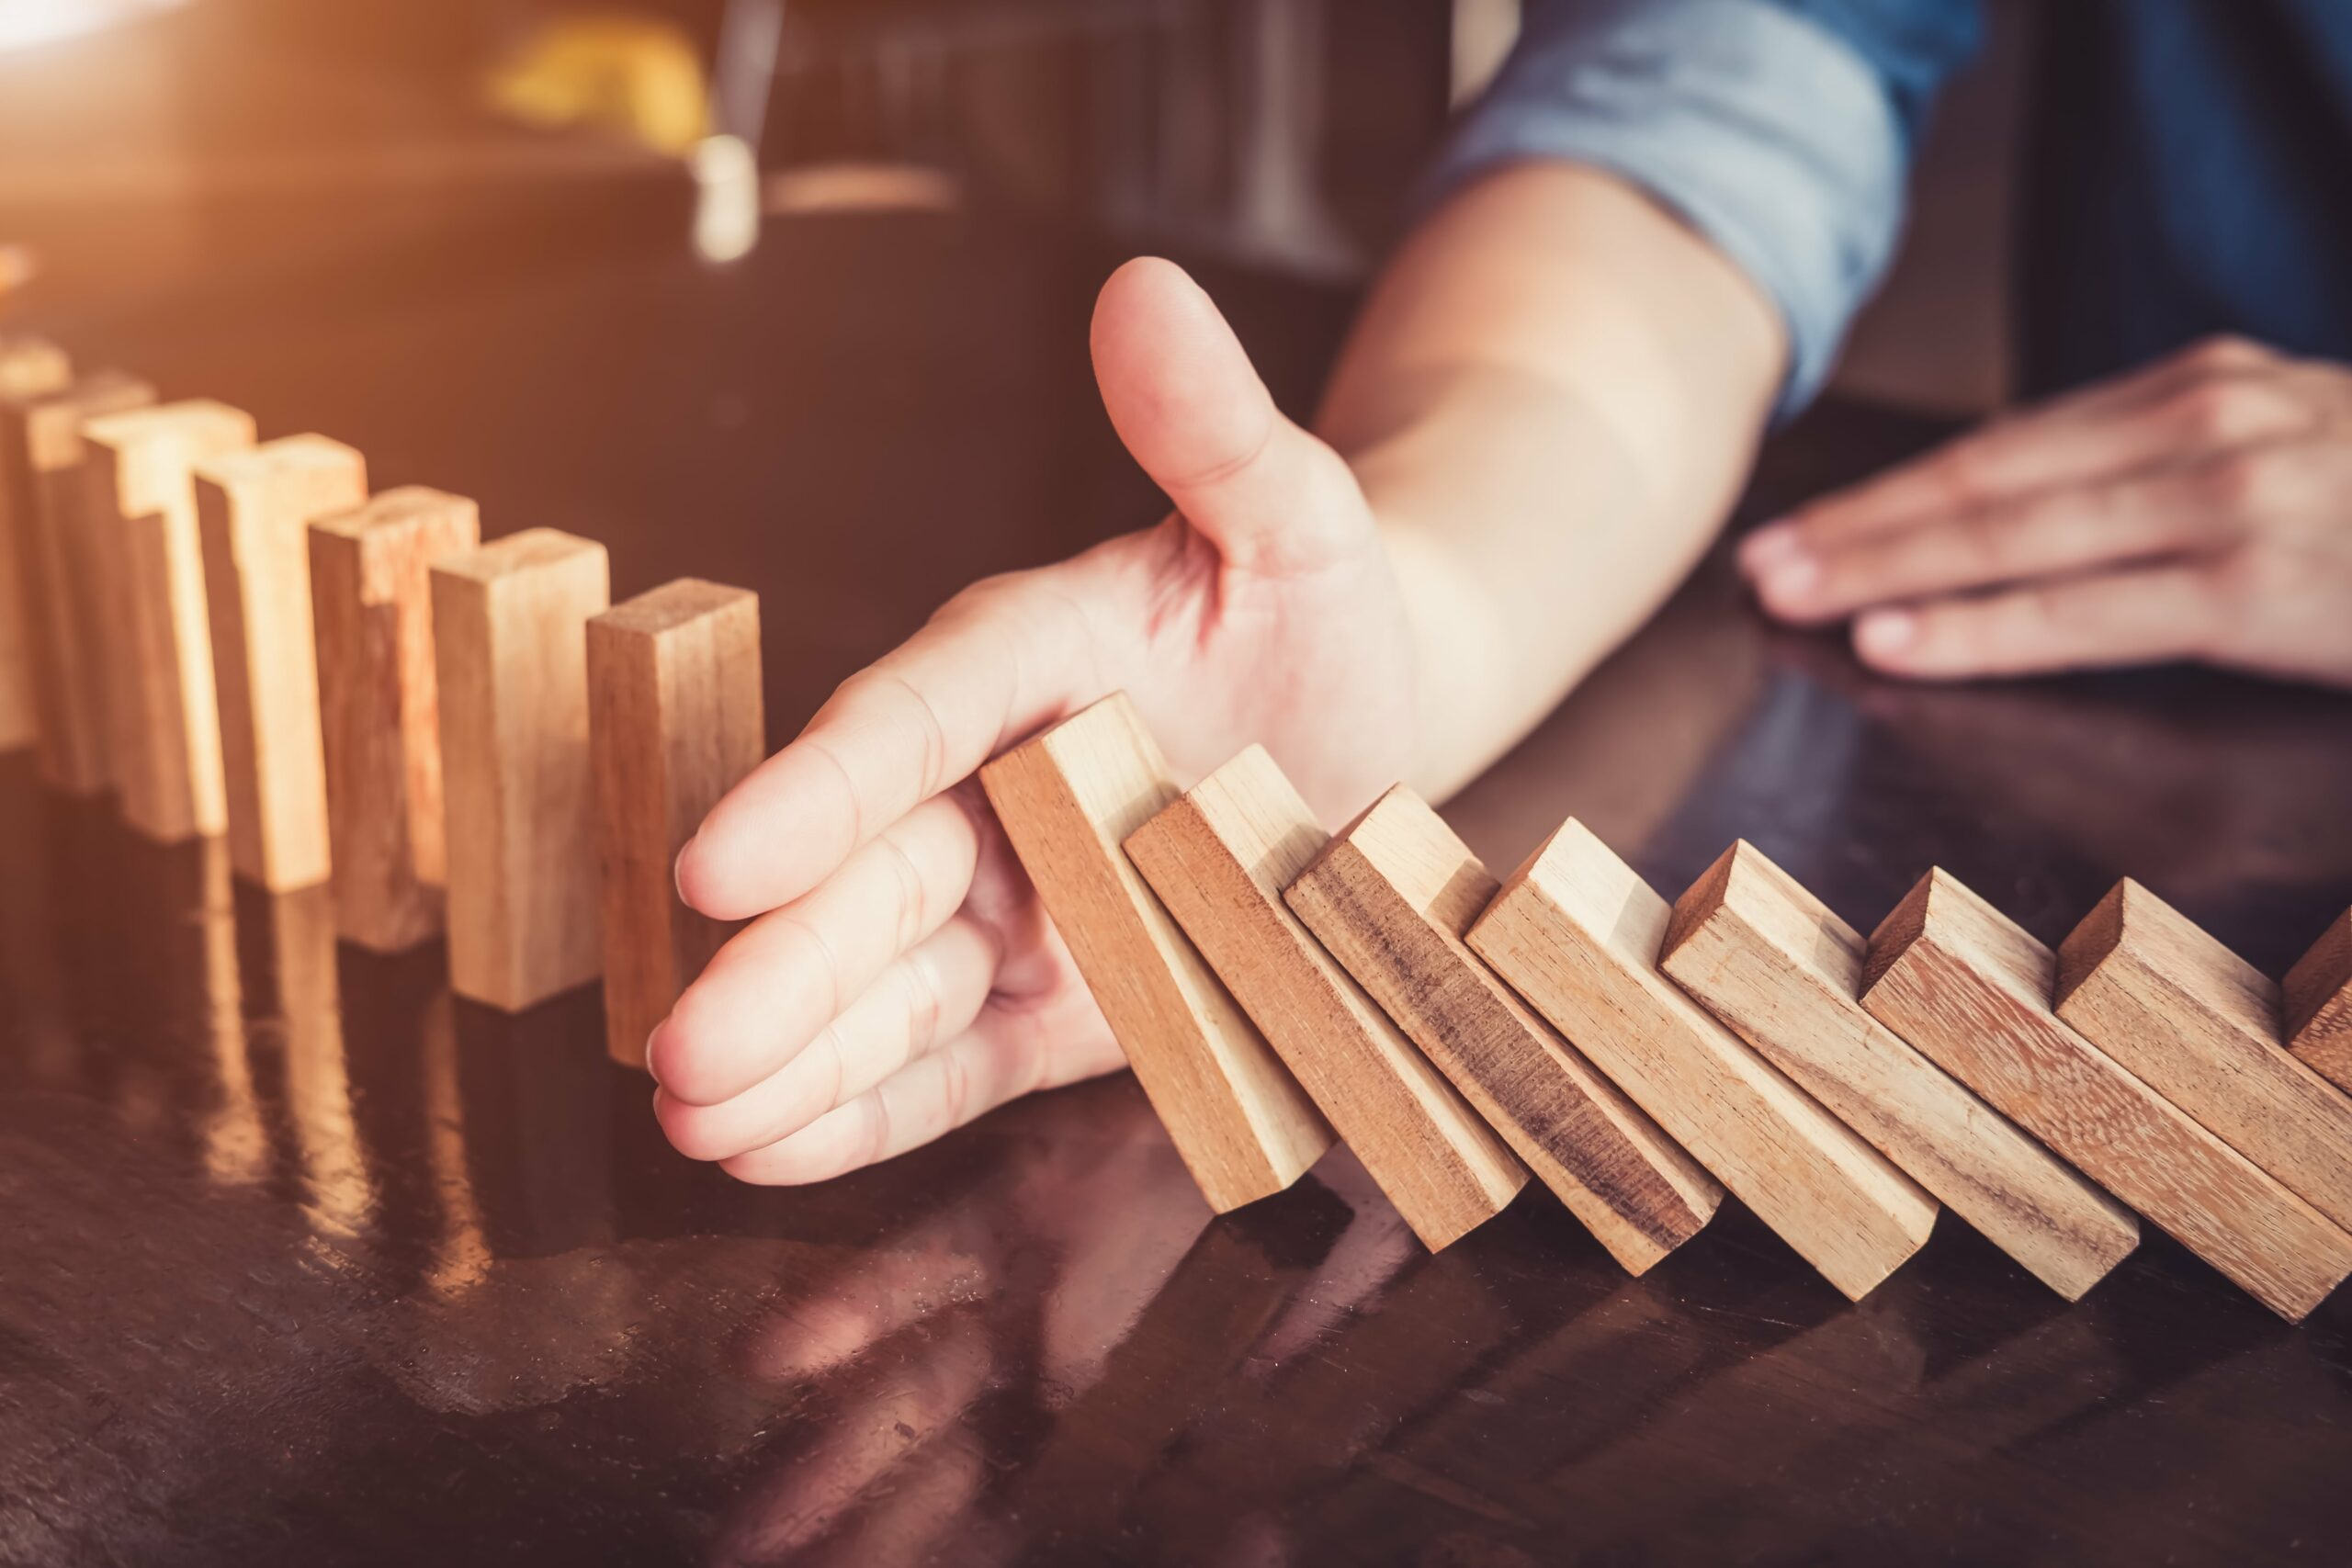 hand stopping dominos from falling to indicate the power of someone stopping the I'm not good at anything belief system